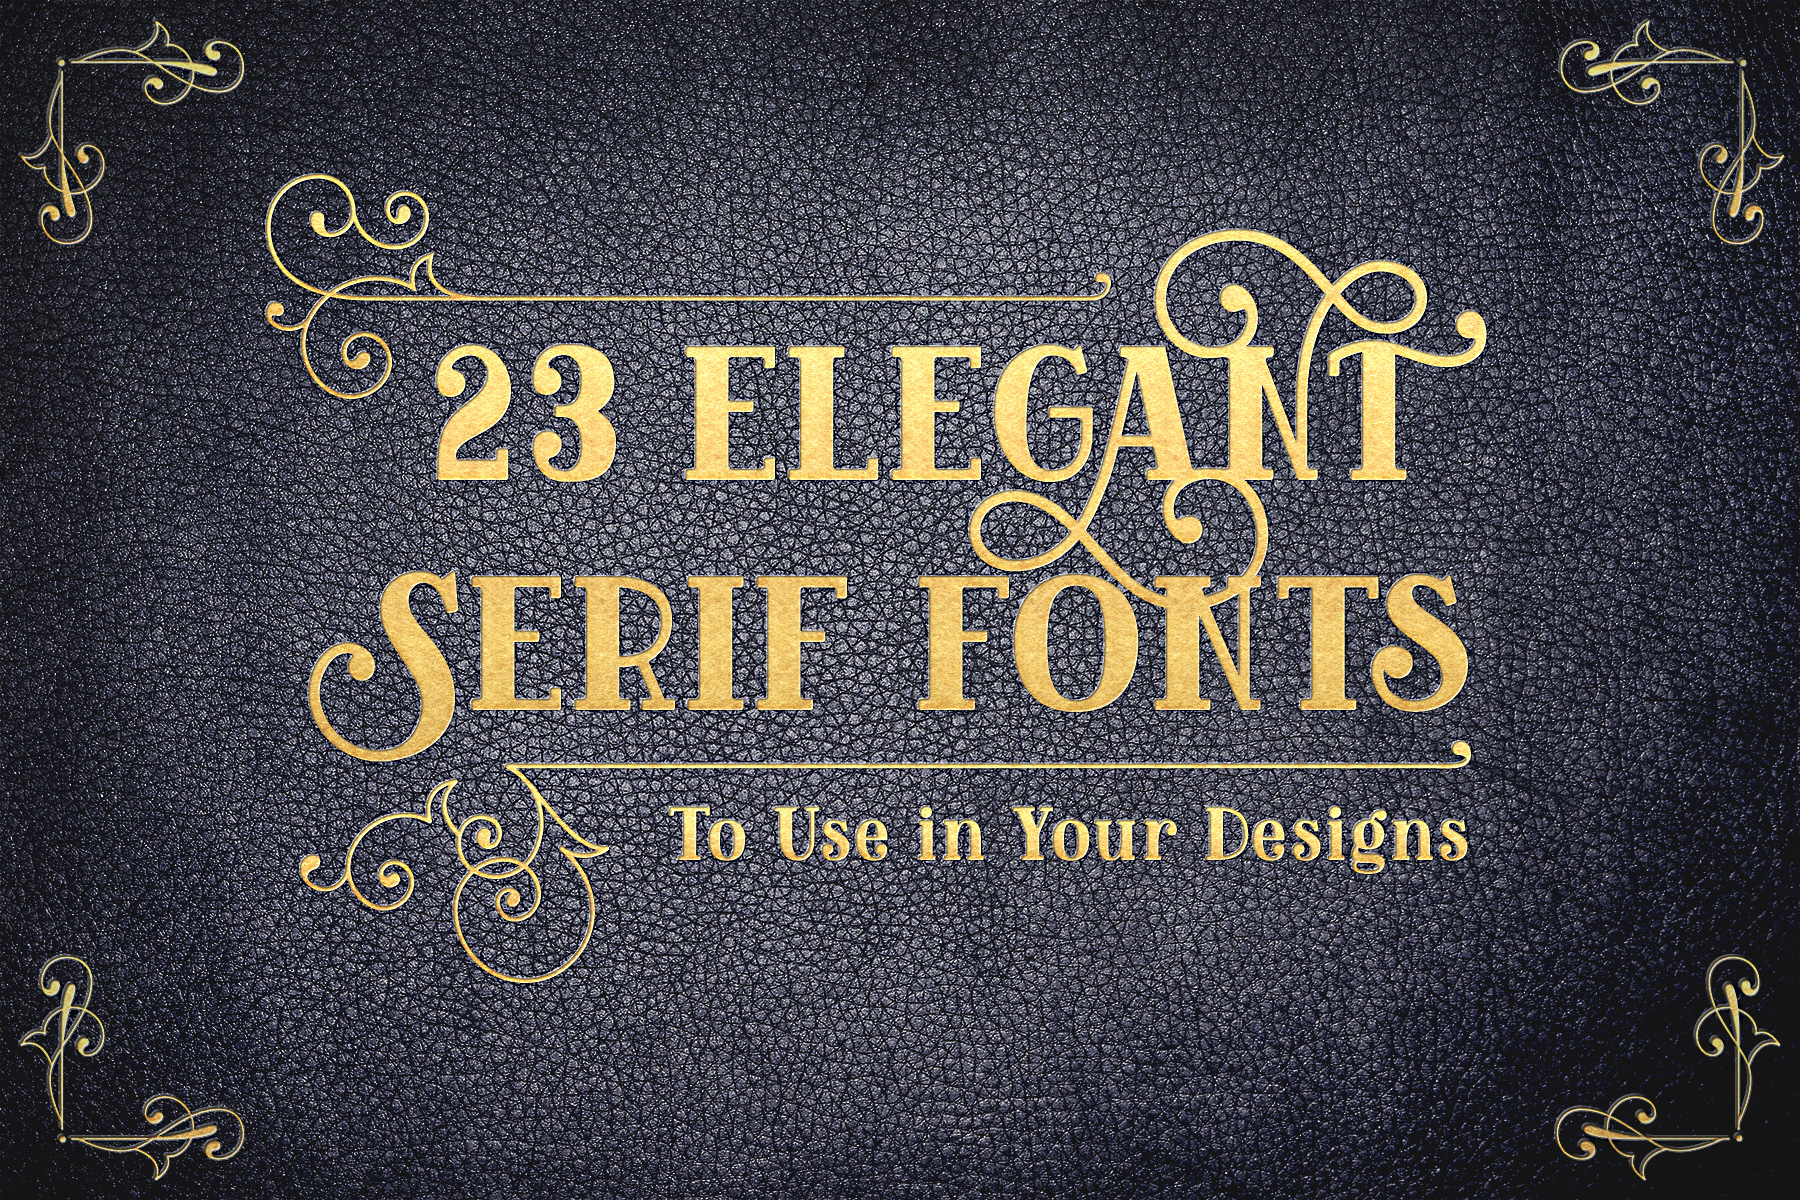 23 Elegant Serif Fonts to Use in Your Designs